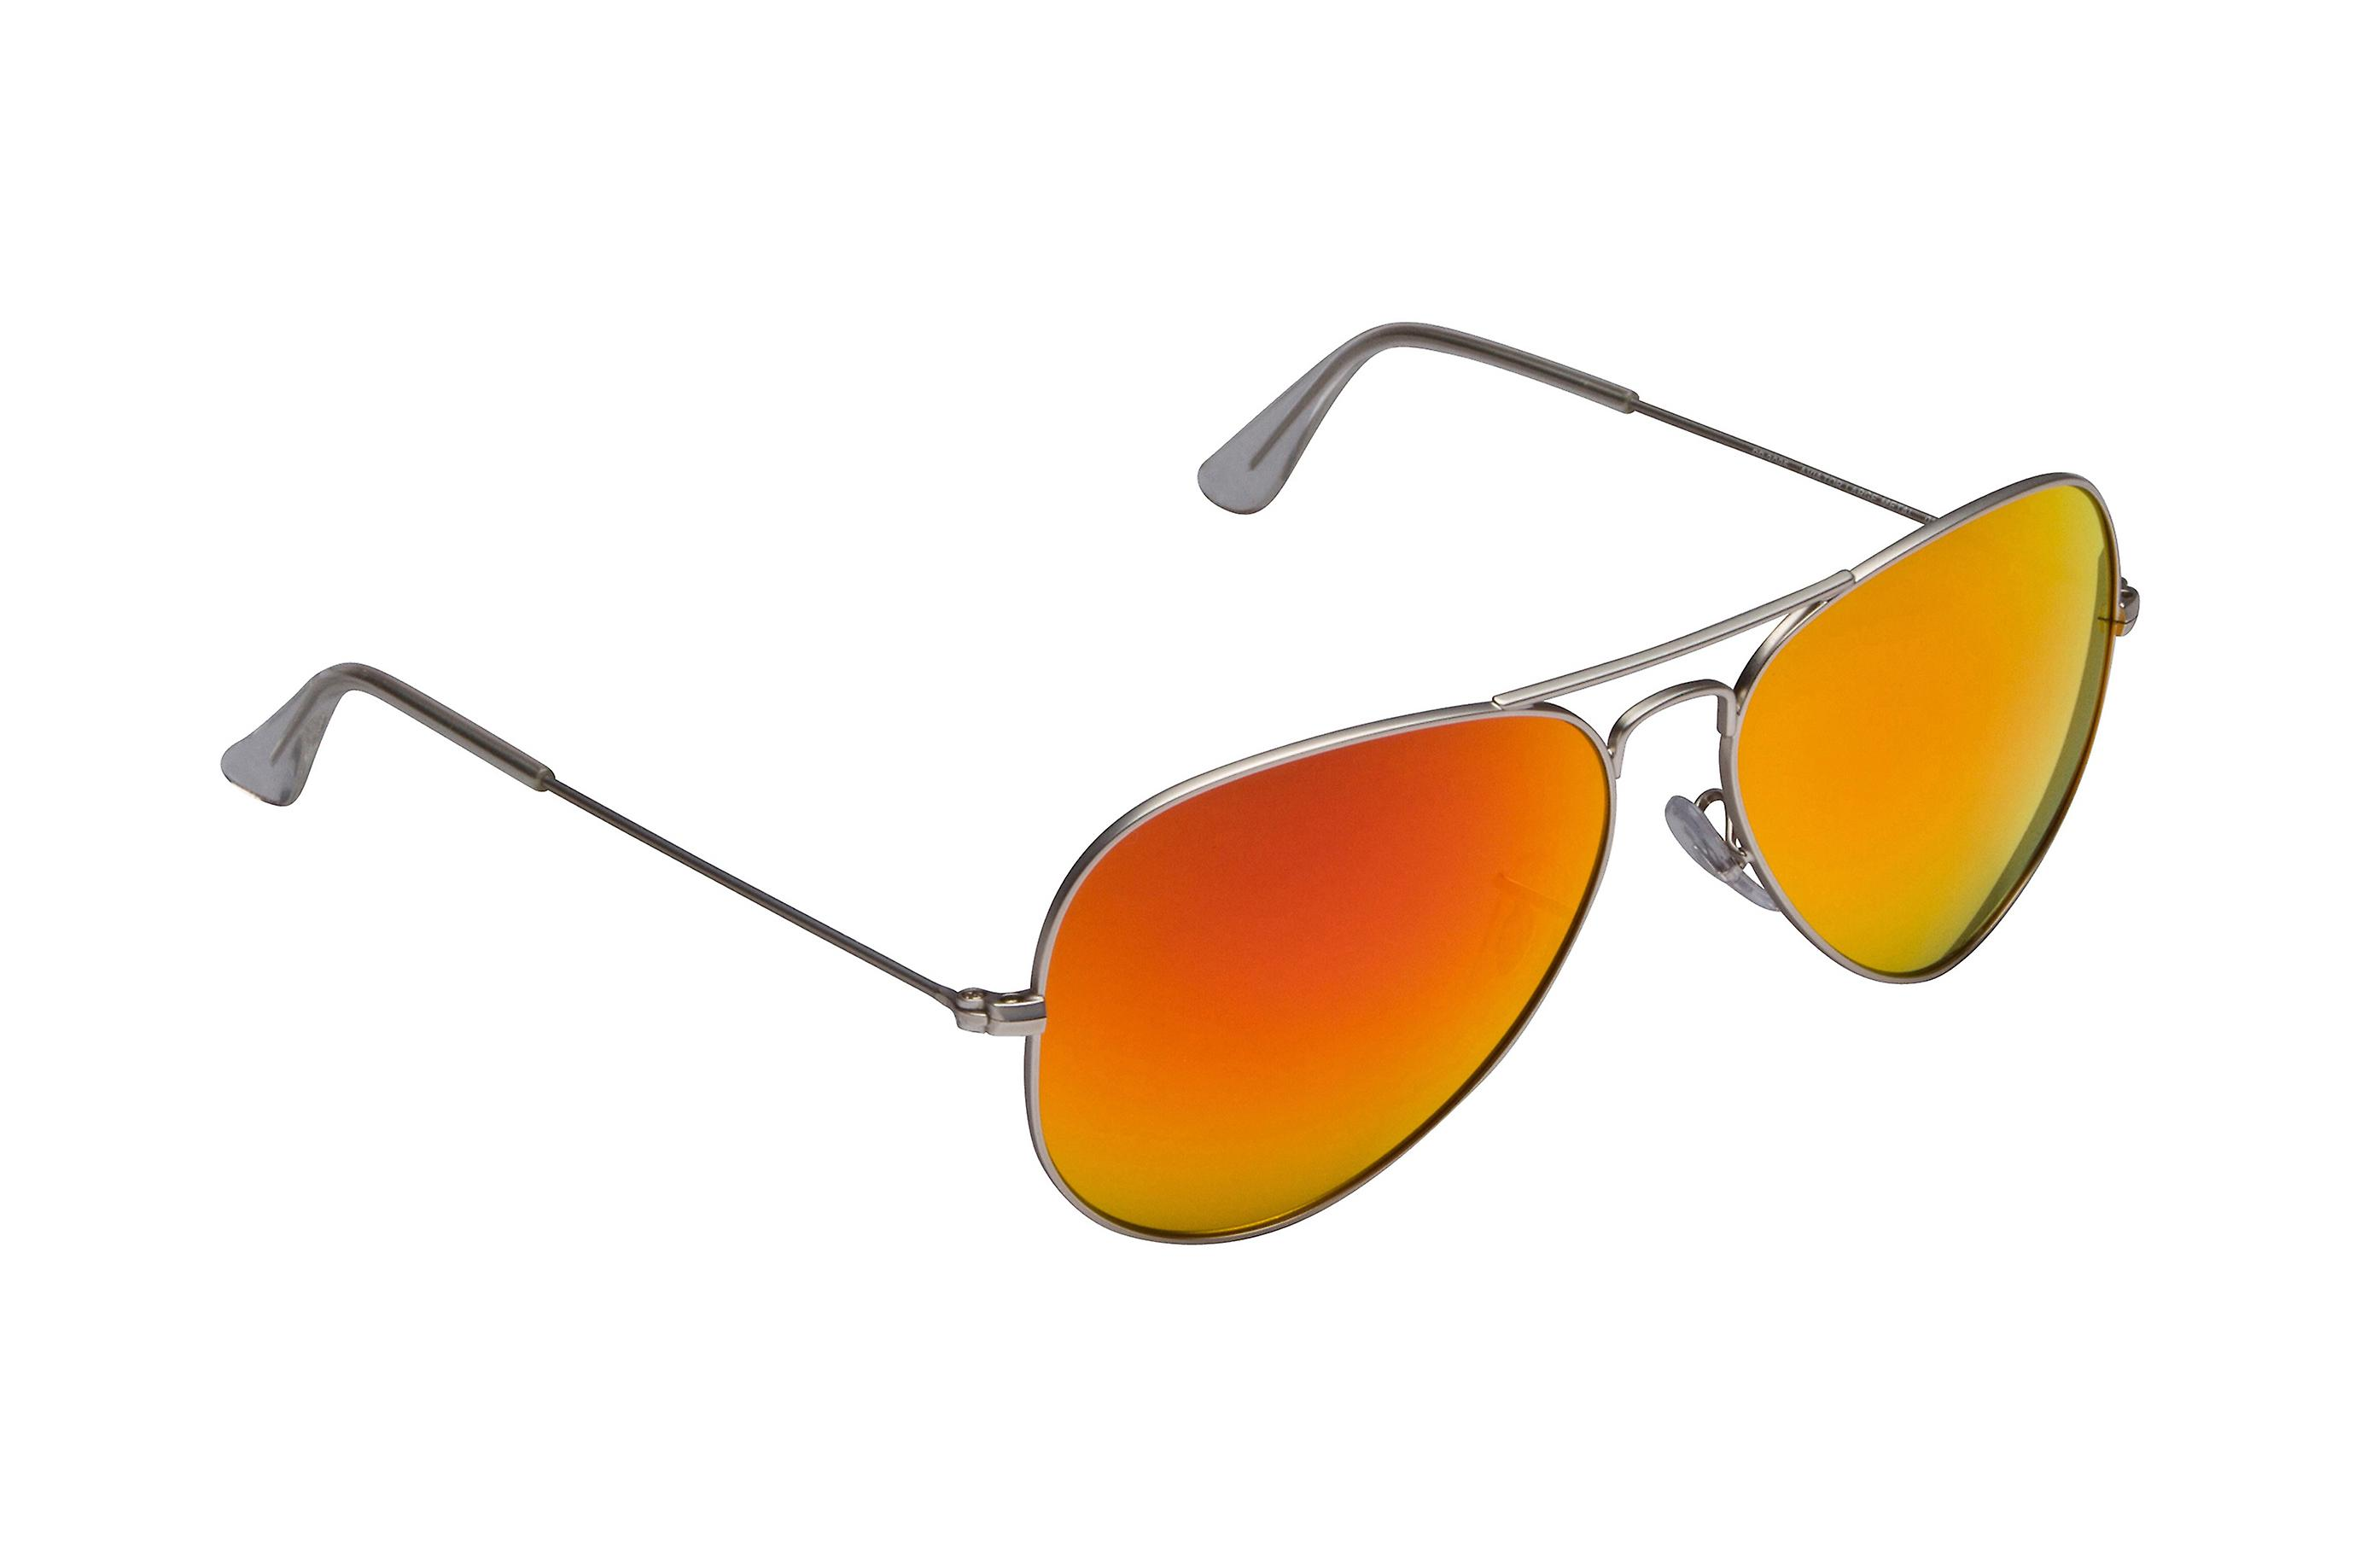 27e3307c05 RB 2132 52mm Replacement Lenses Polarized Red by SEEK fits RAY BAN  Sunglasses